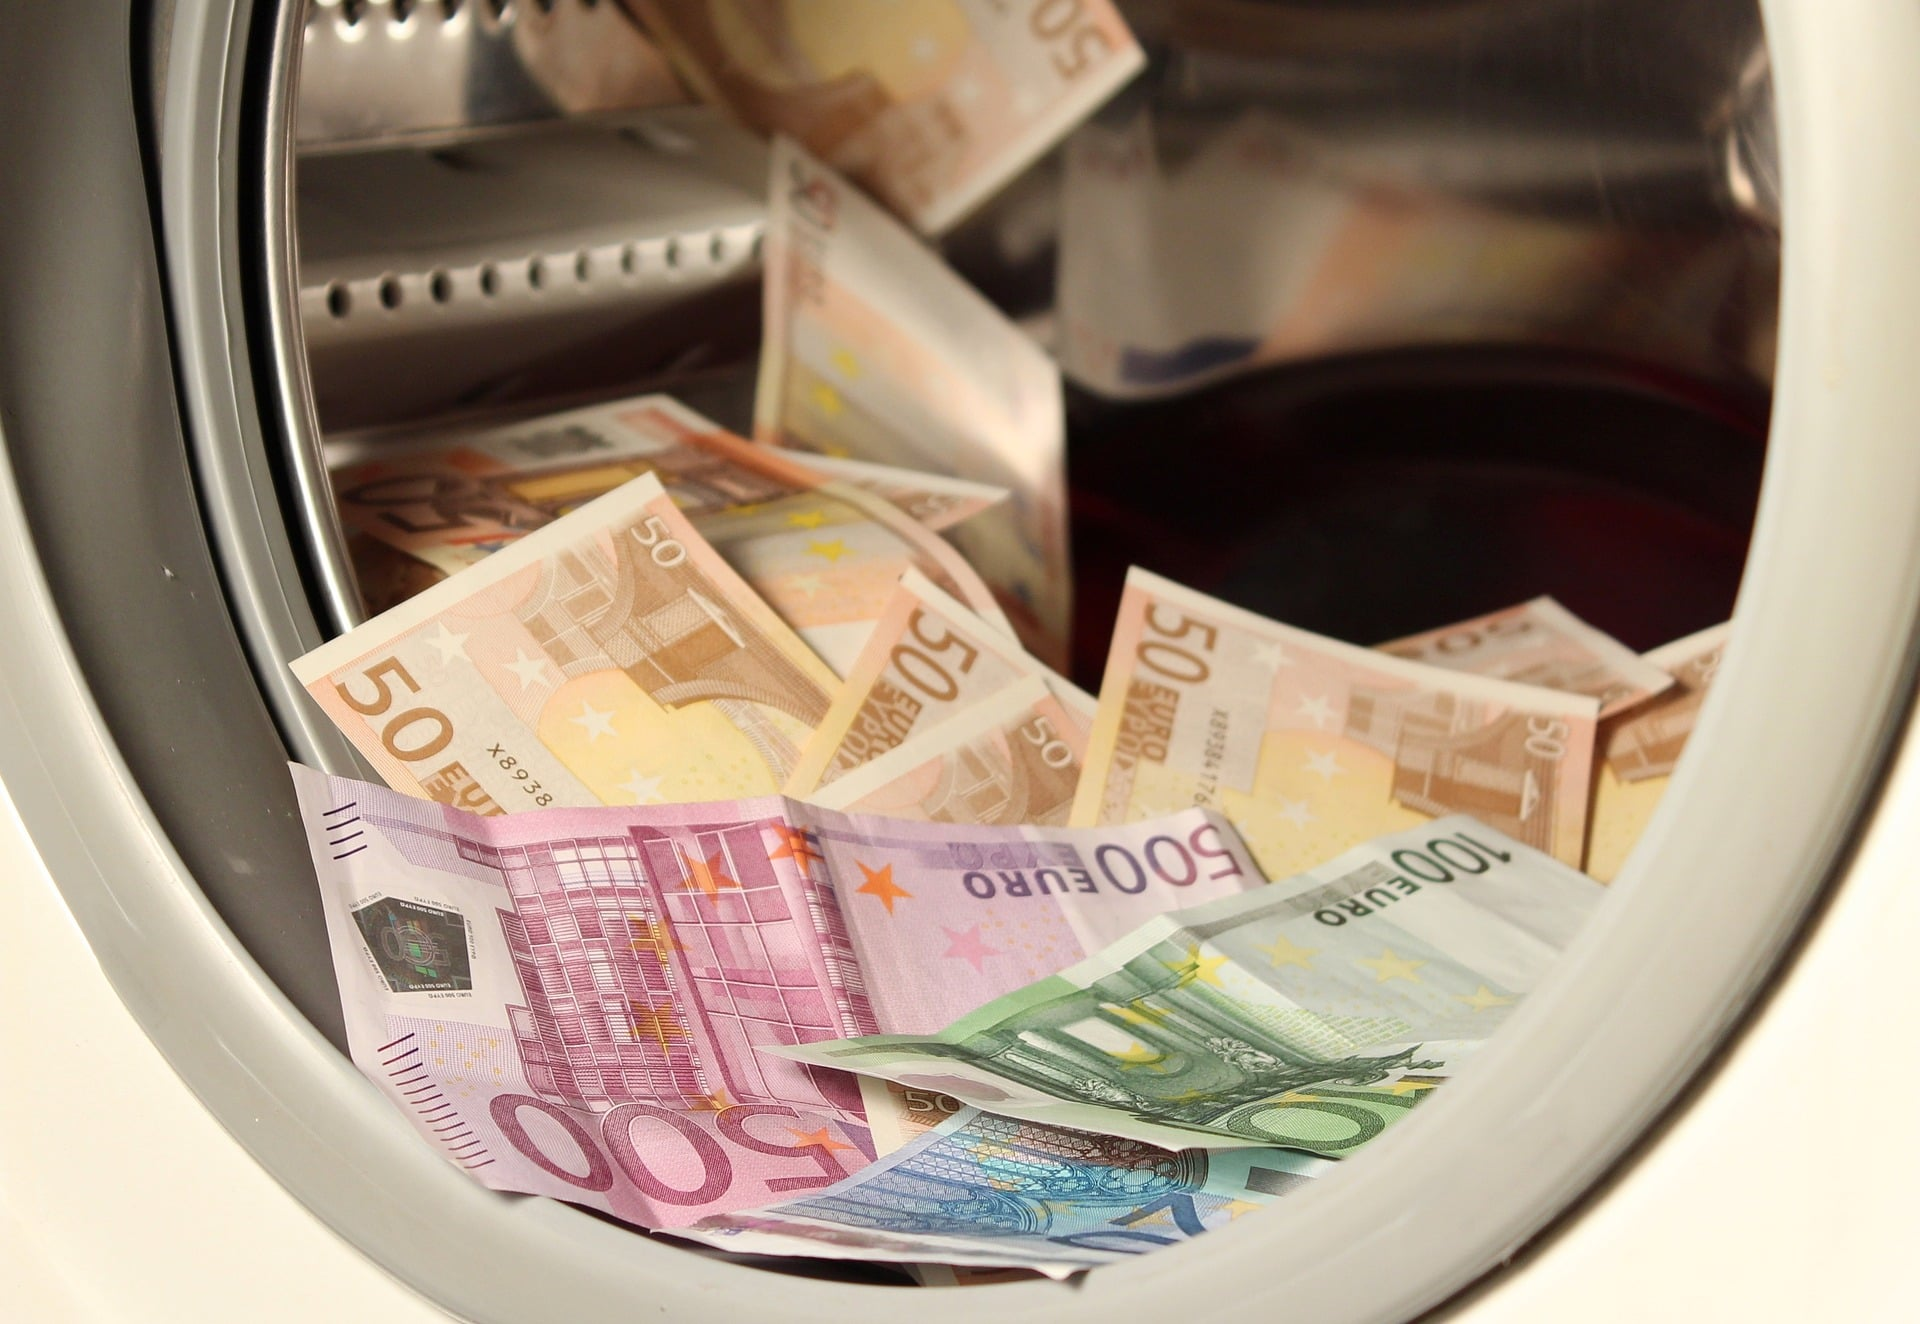 Global Effectiveness At Stopping Money Laundering Stands At 32%